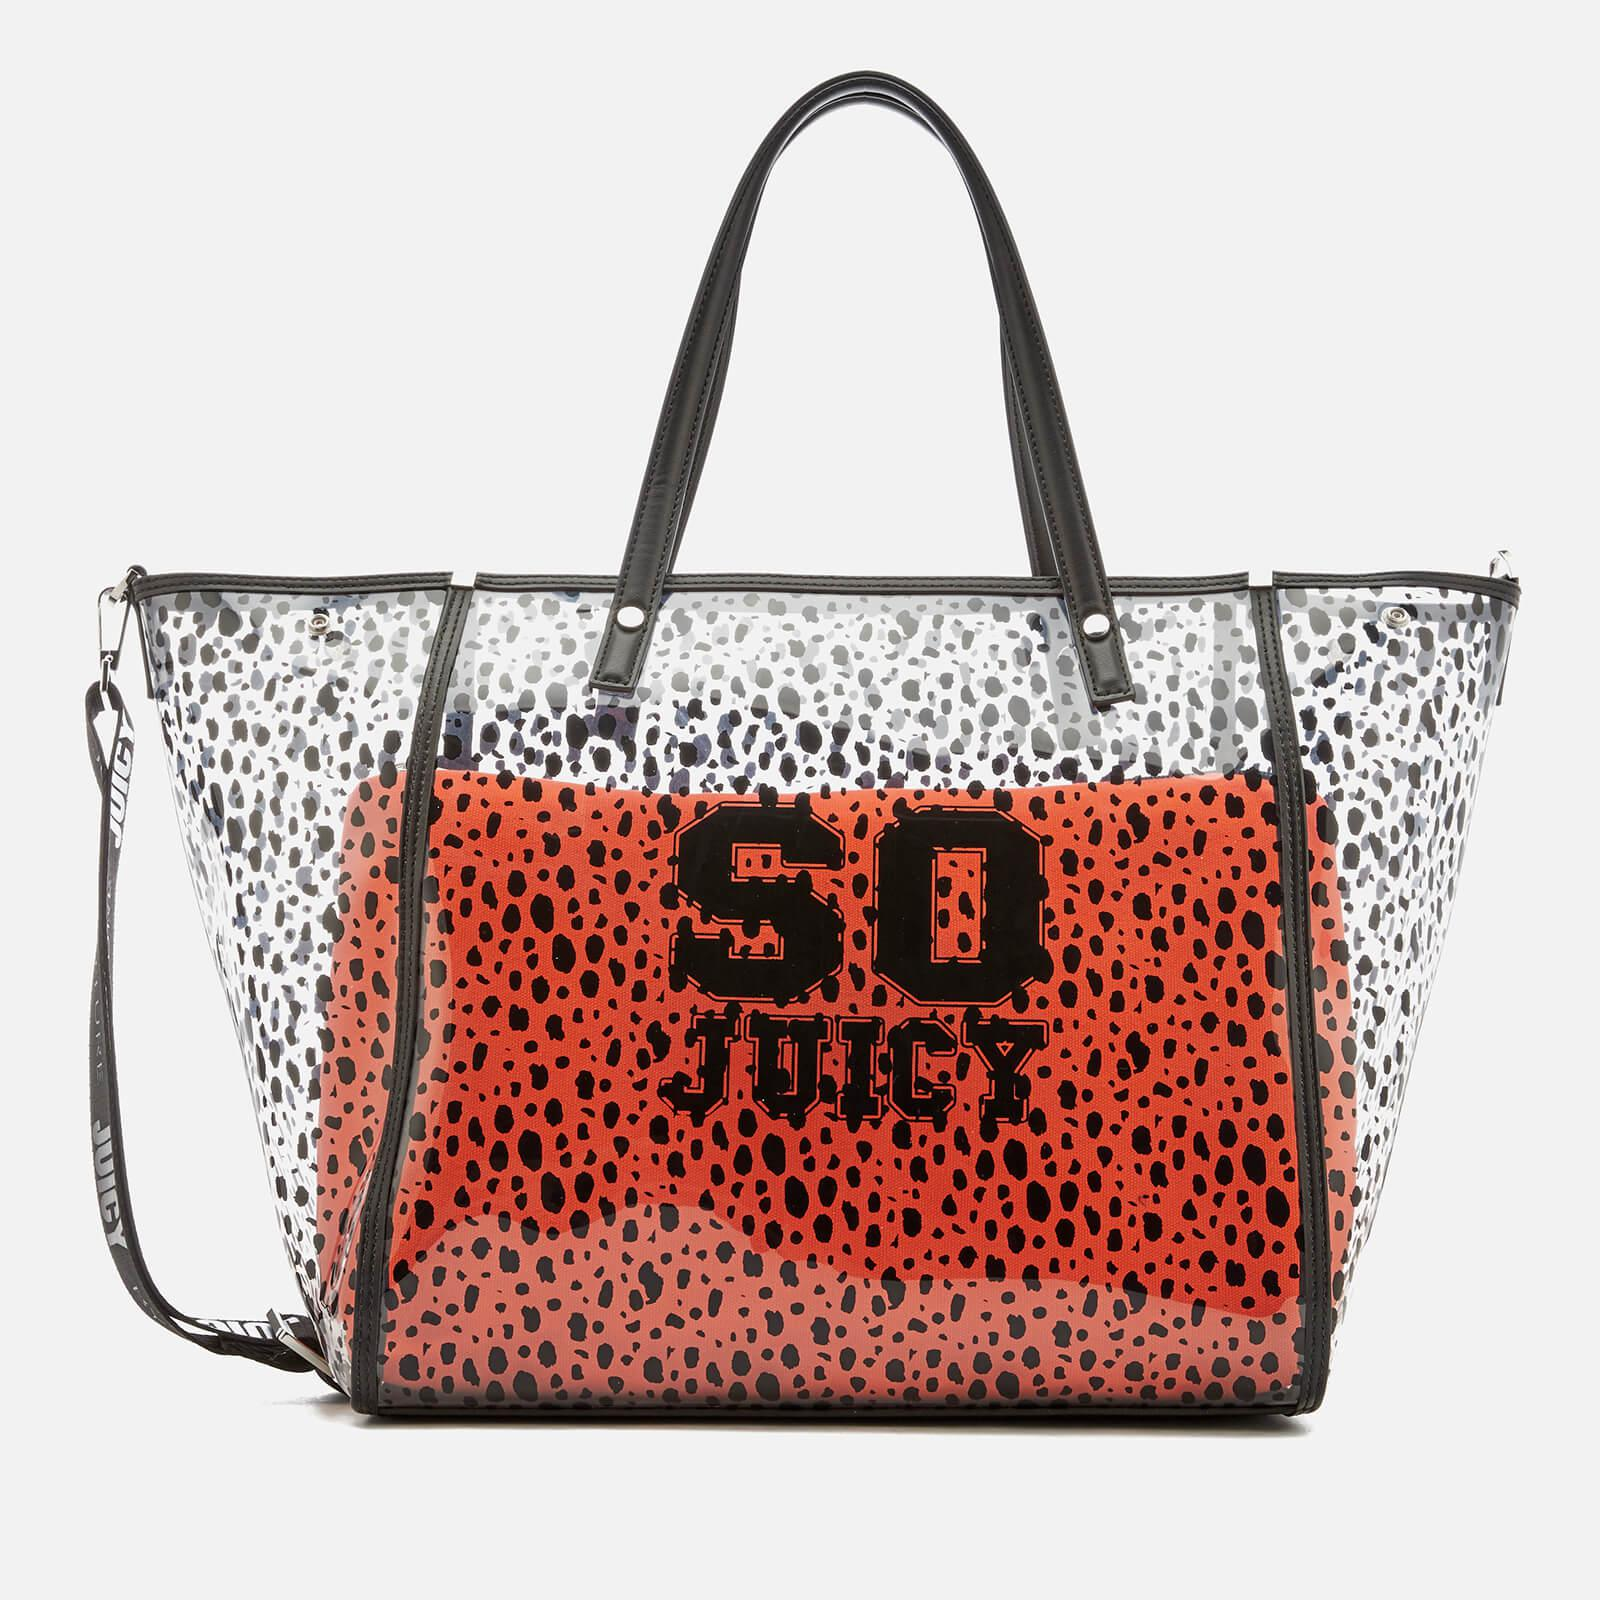 Juicy Couture Women S Red Arlington Soft Tote Bag